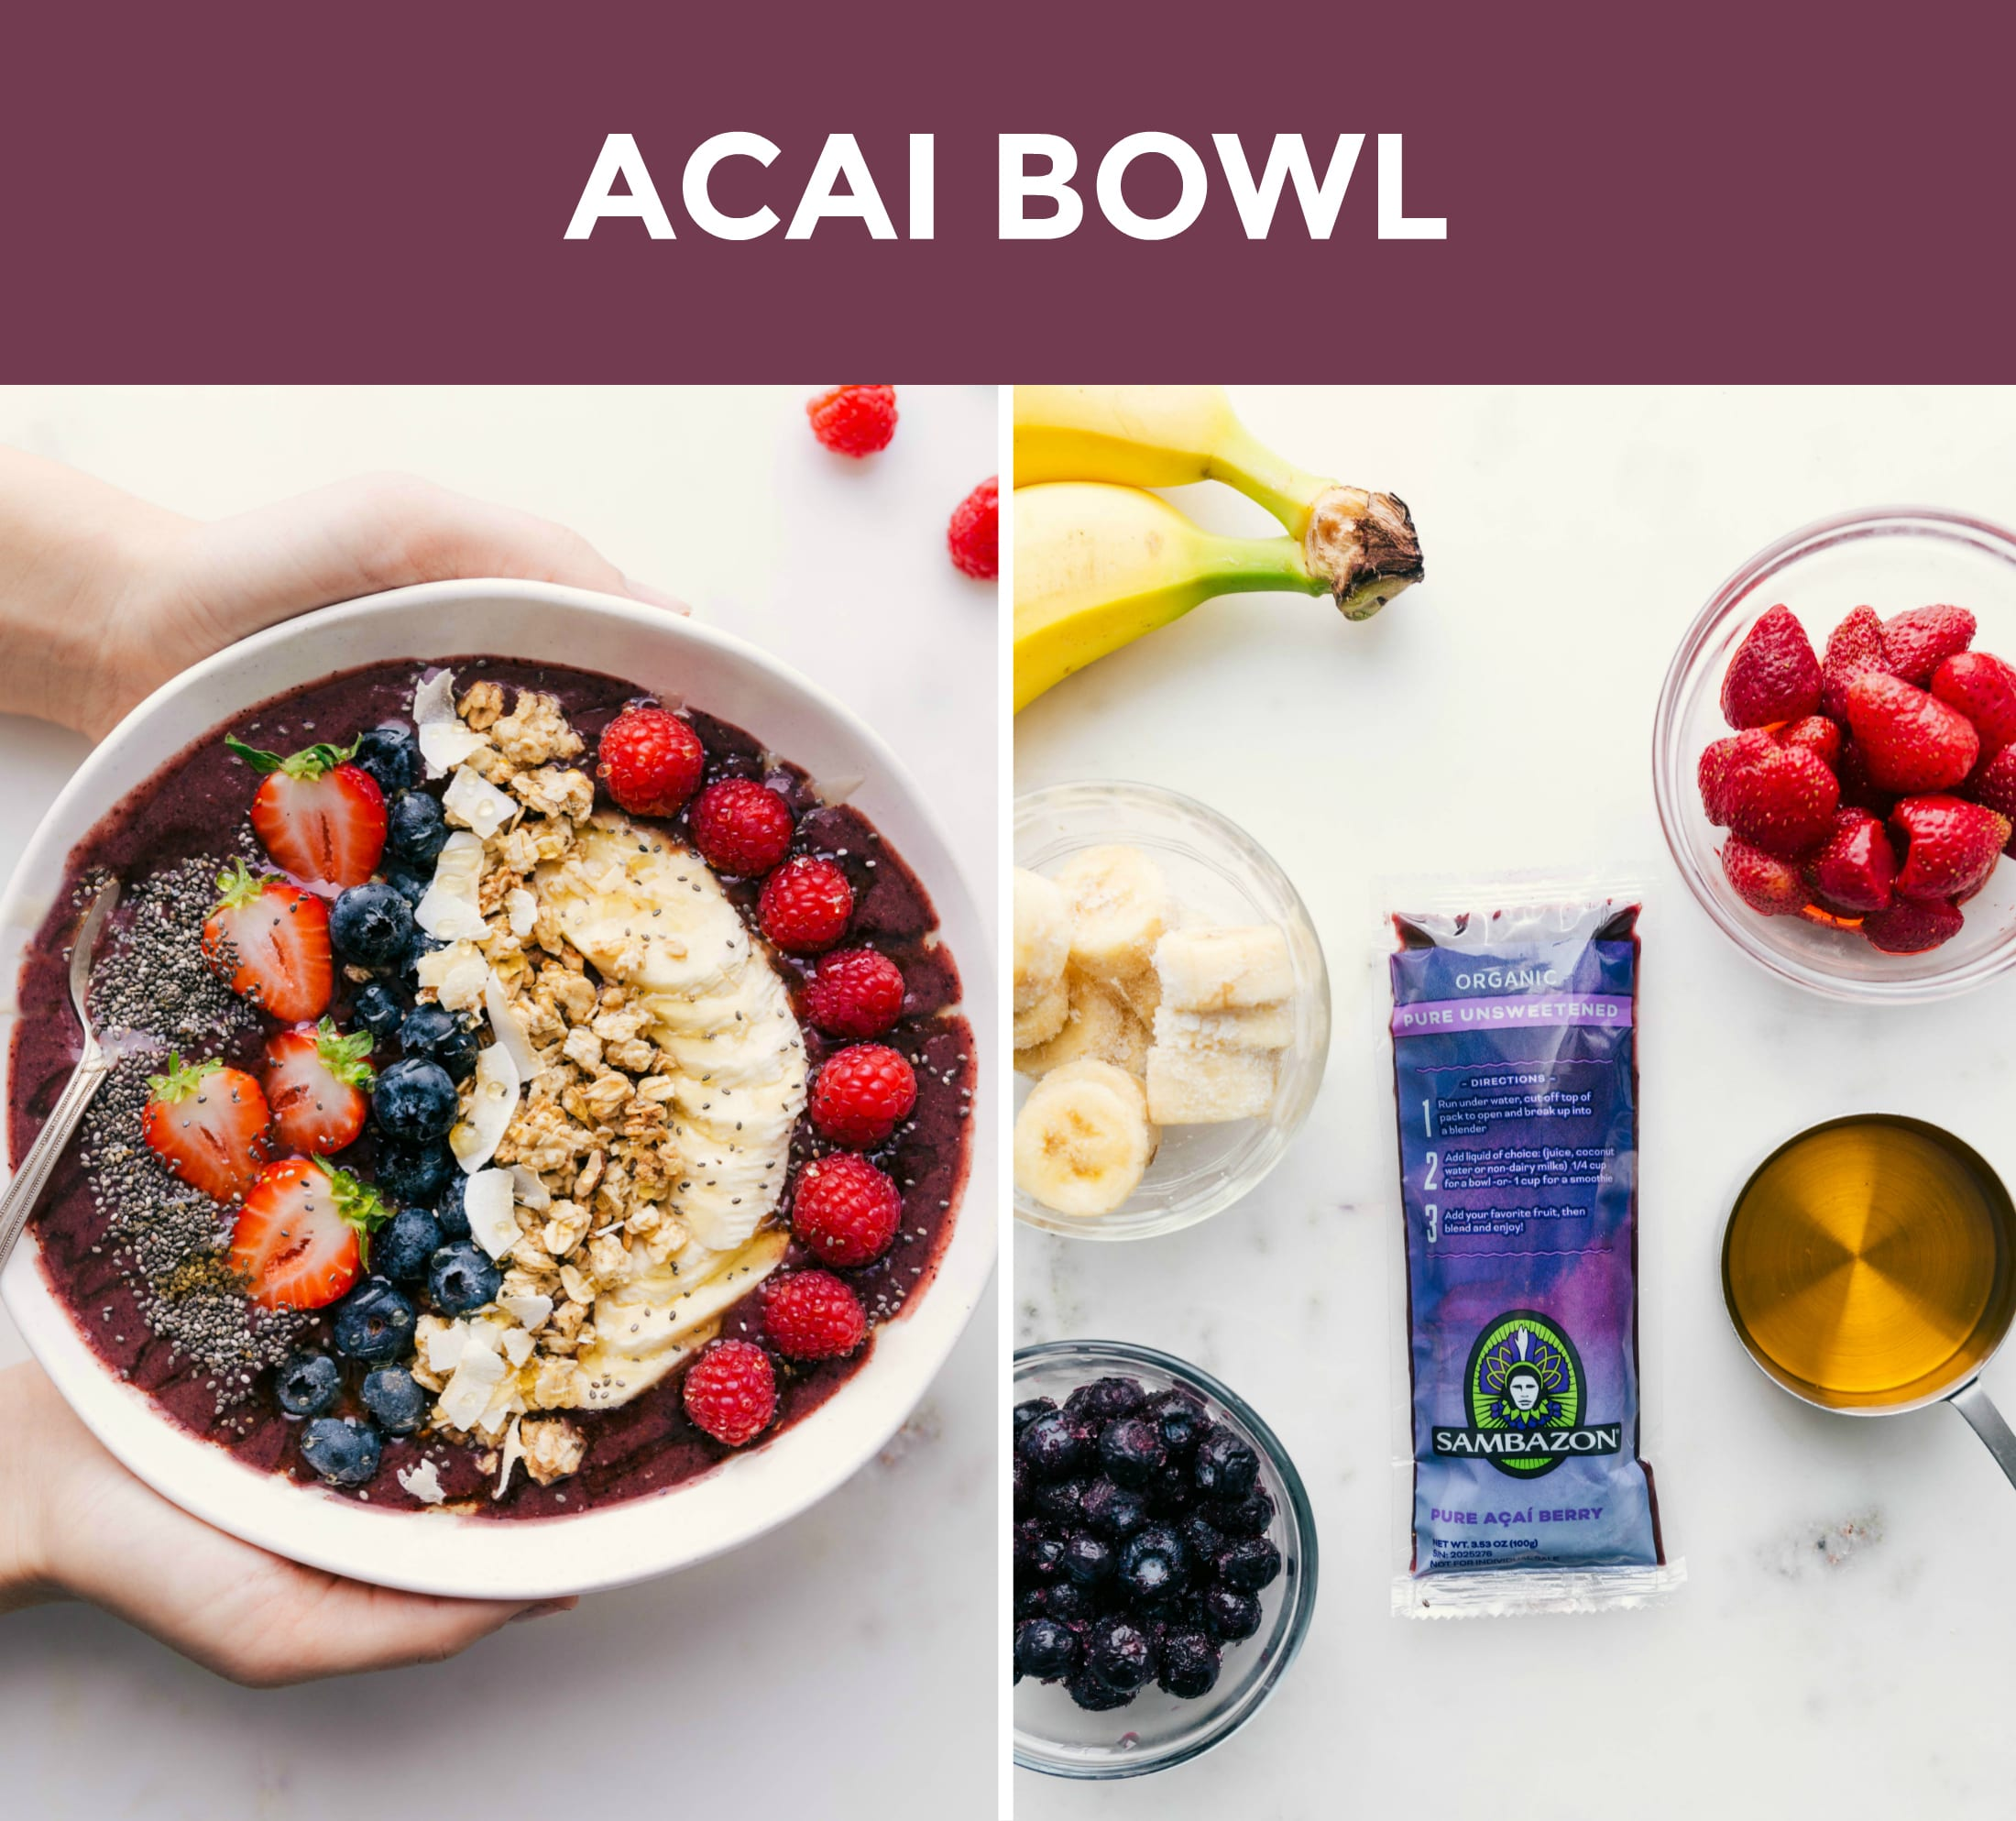 Two side by side photos; on the left is an overhead shot of an acai bowl and on the right is an ingredient shot